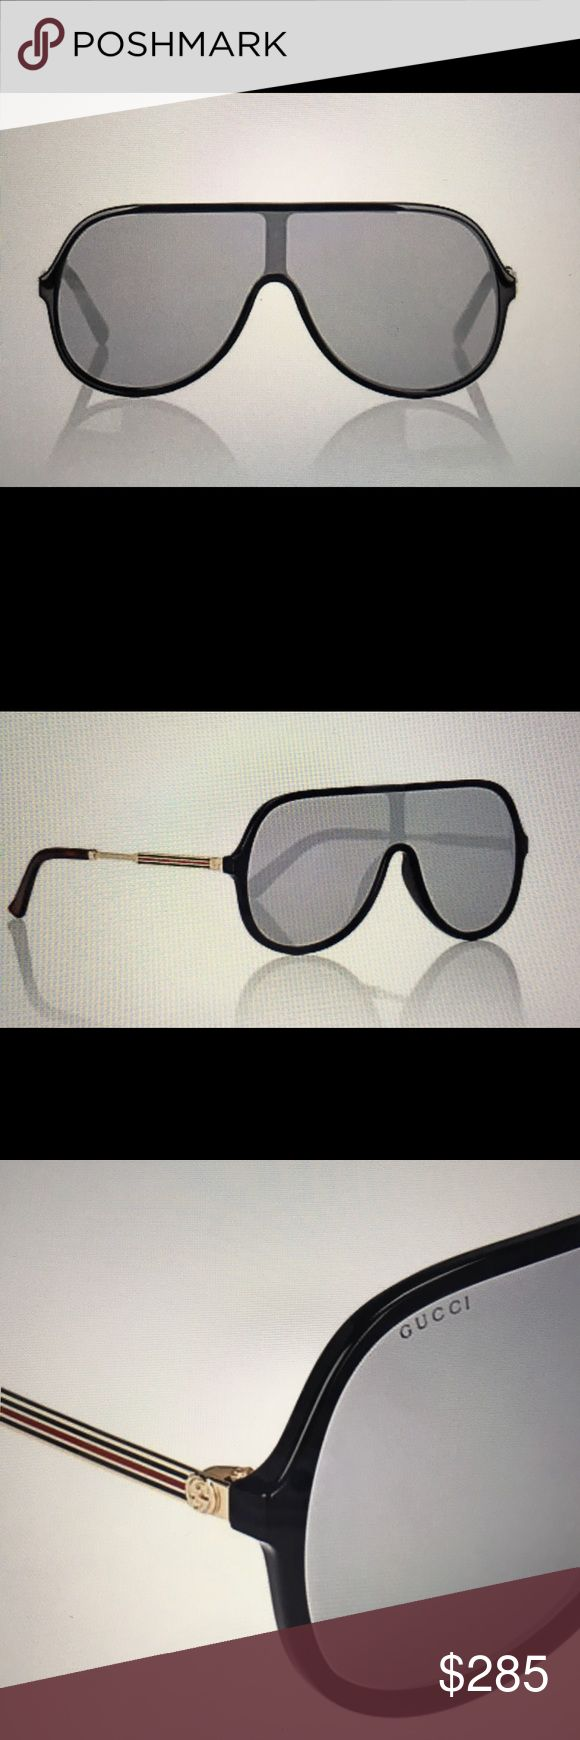 GUCCI Black oversized aviator frames GUCCI Black oversized aviator frames. Japanese made frames. Etched logo at lens. Interlocking G and signature web stripe at temples. Nose guards. Includes case, satin pouch, and cleaning cloth. Gucci Accessories Sunglasses